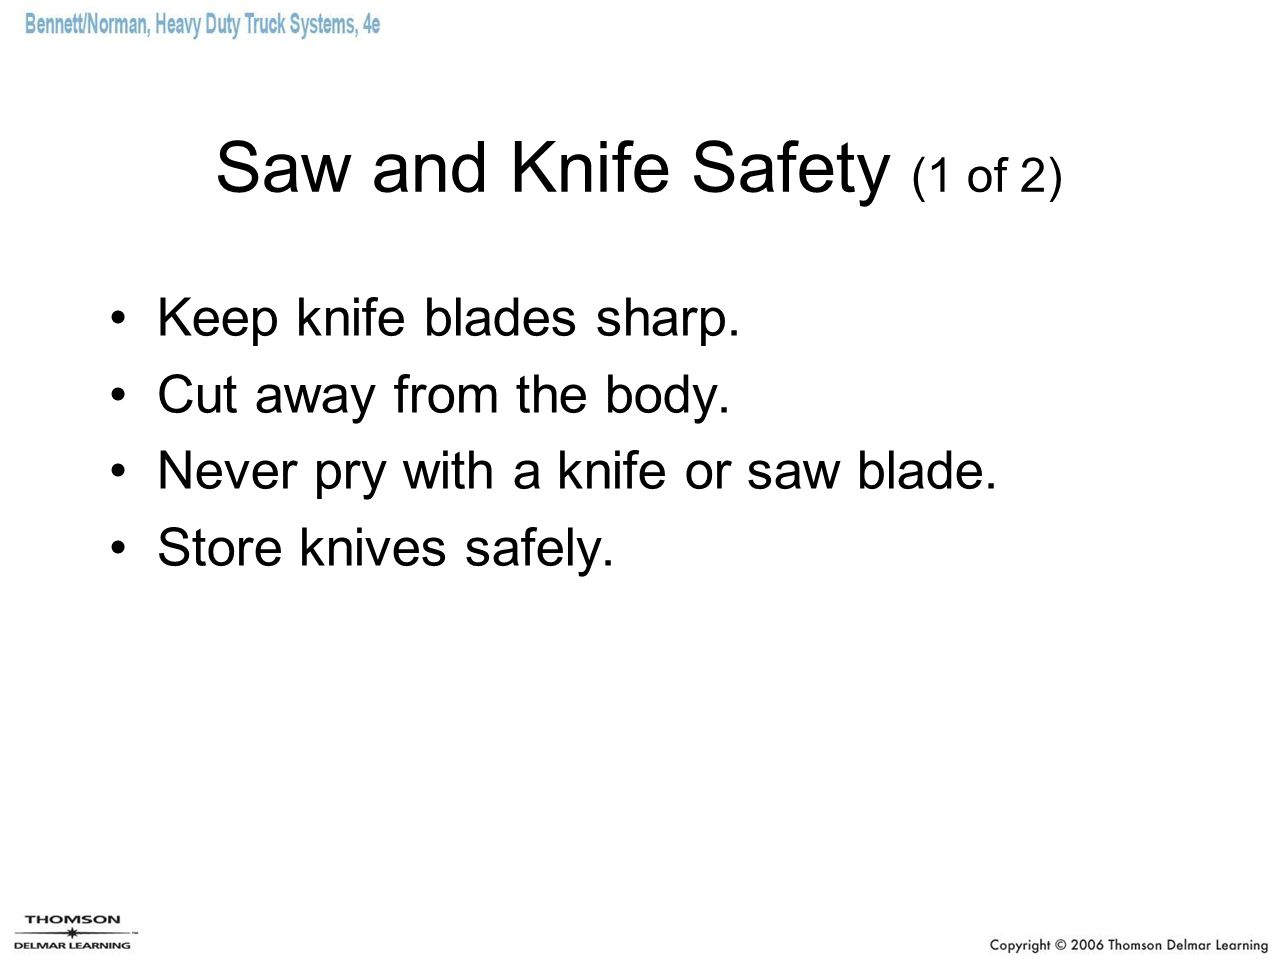 Saw and Knife Safety (1 of 2)